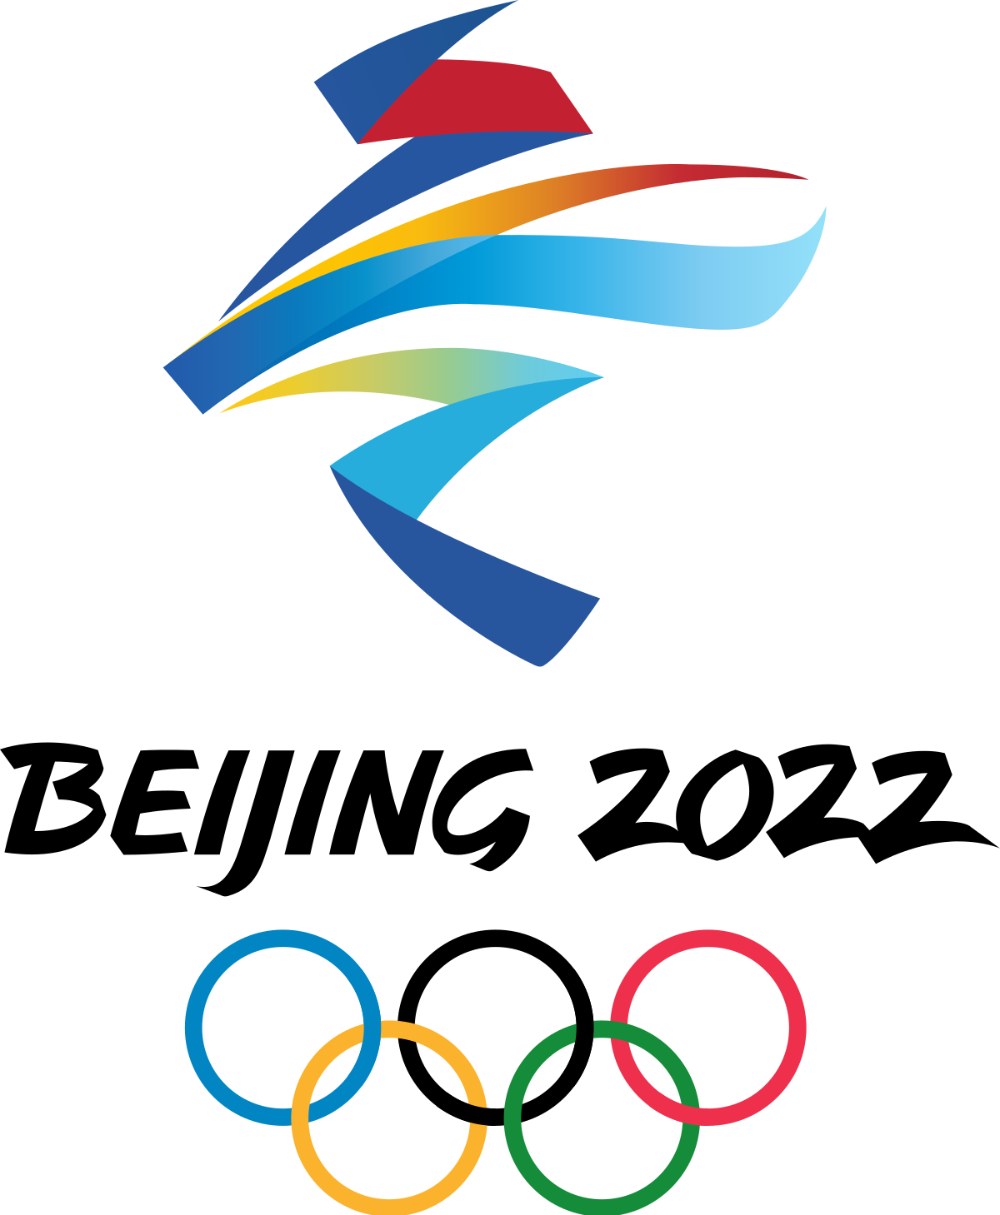 2022 Winter Olympics Wikipedia in 2020 (With images)